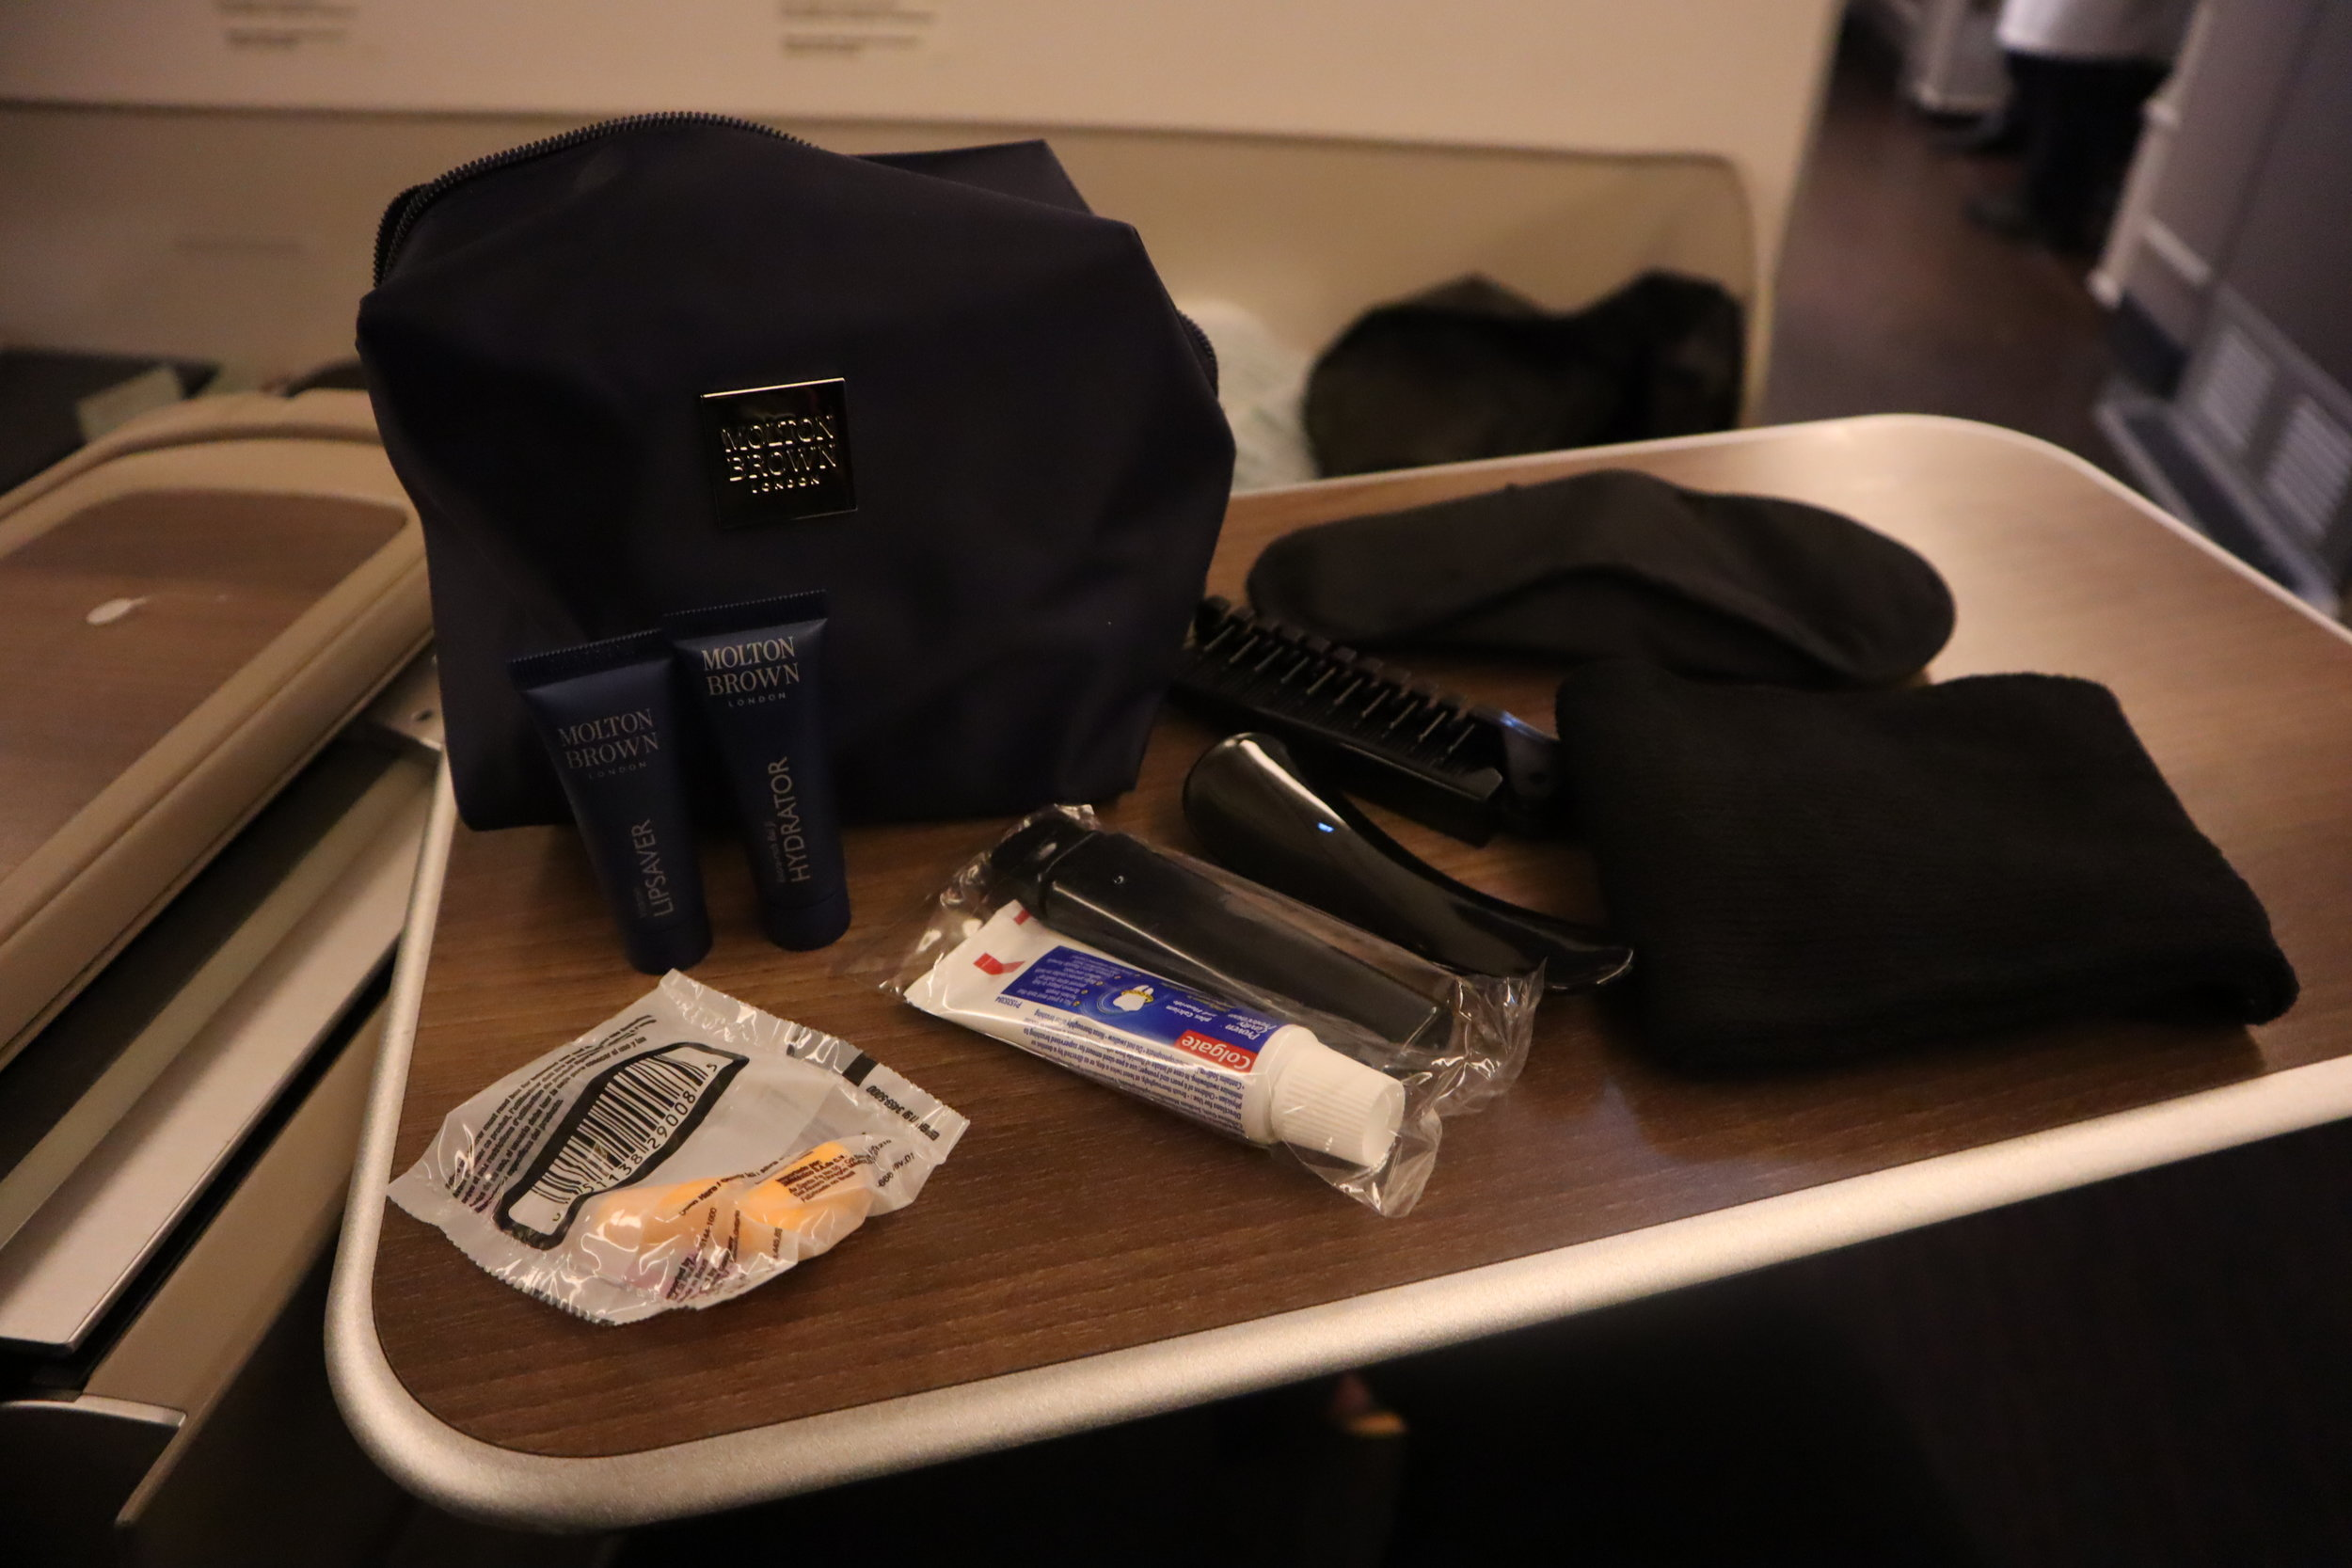 Turkish Airlines 777 business class – Amenity kit